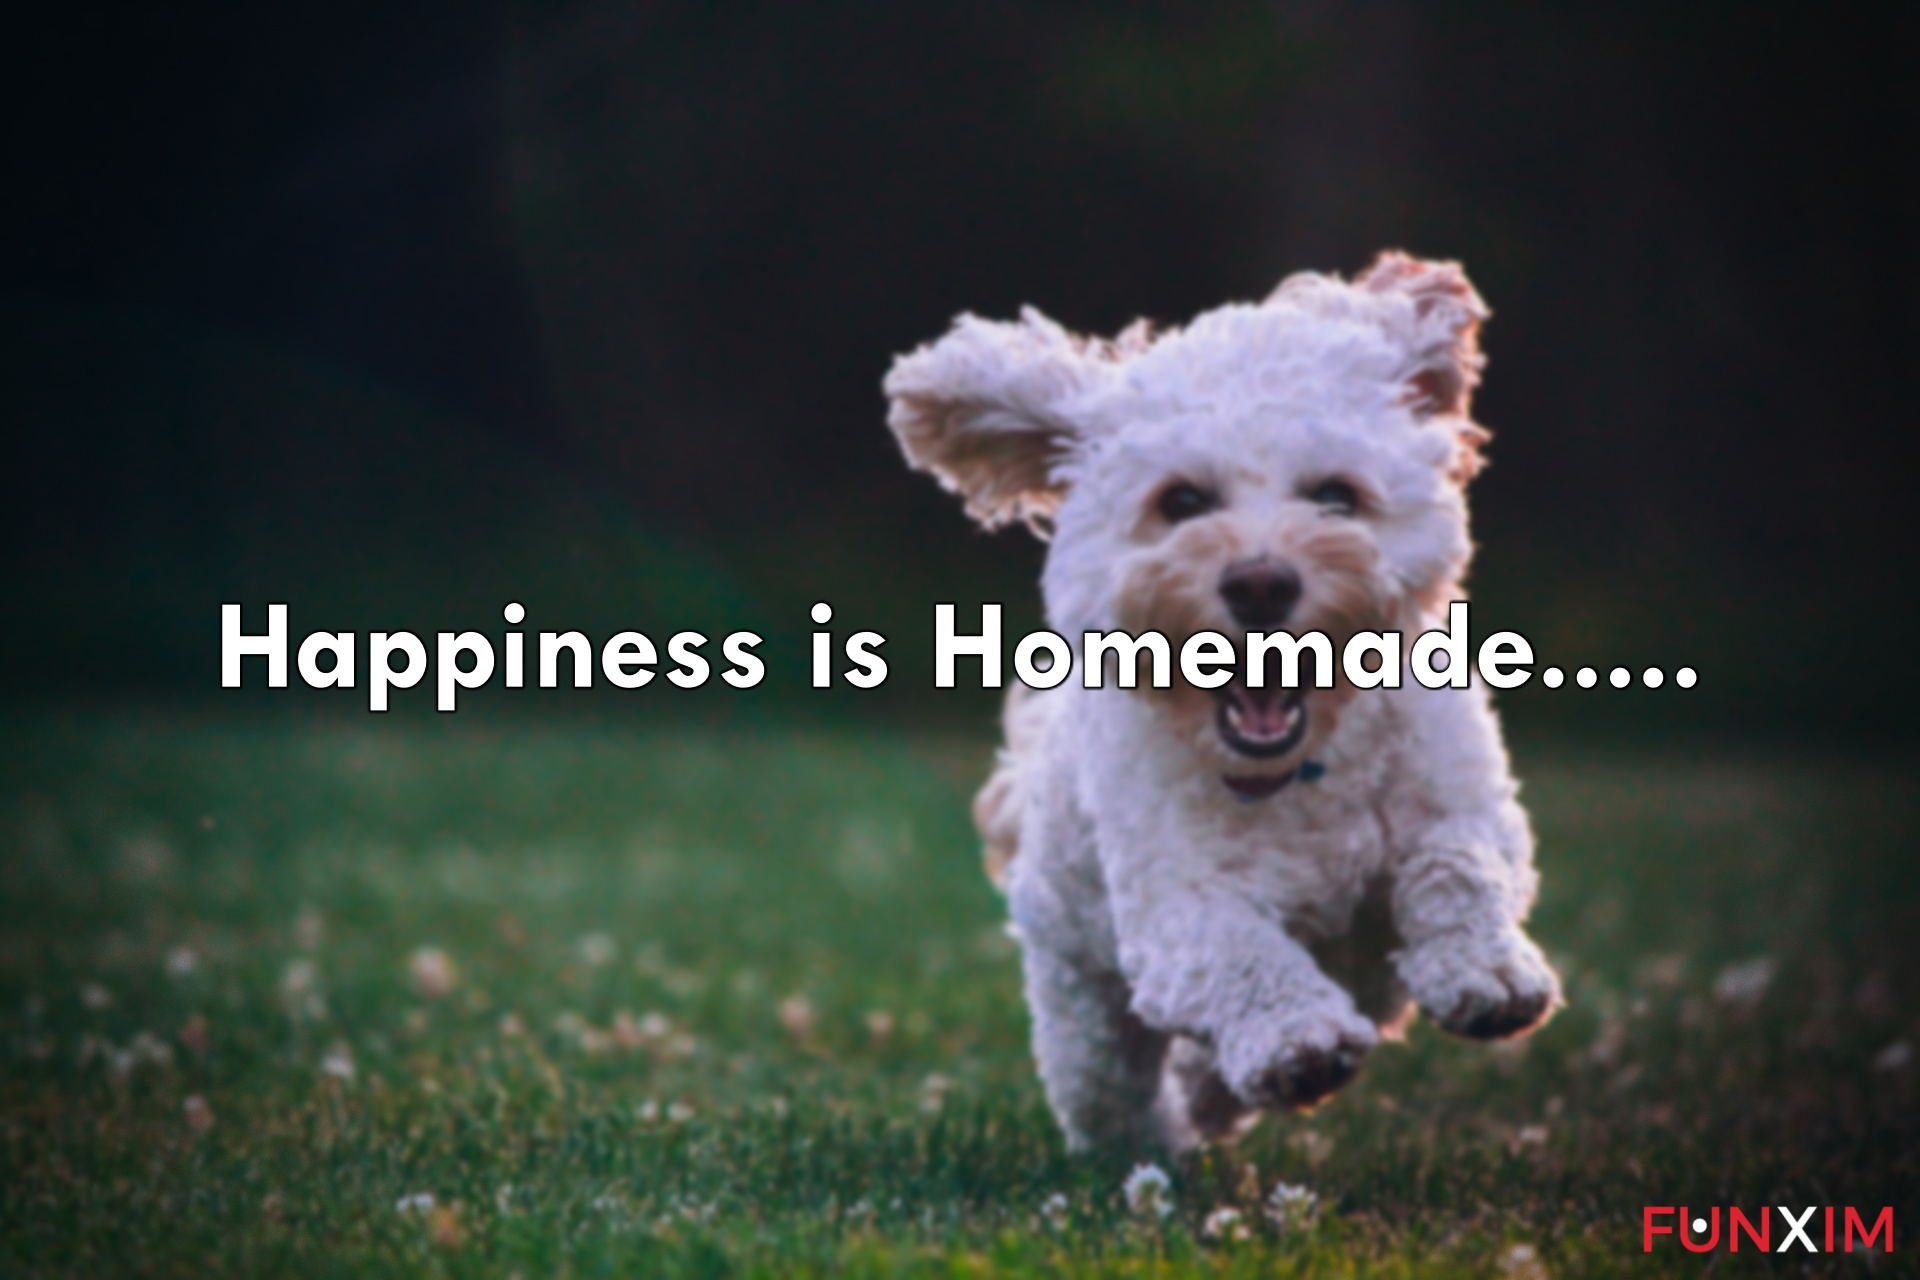 Happiness is homemade.....